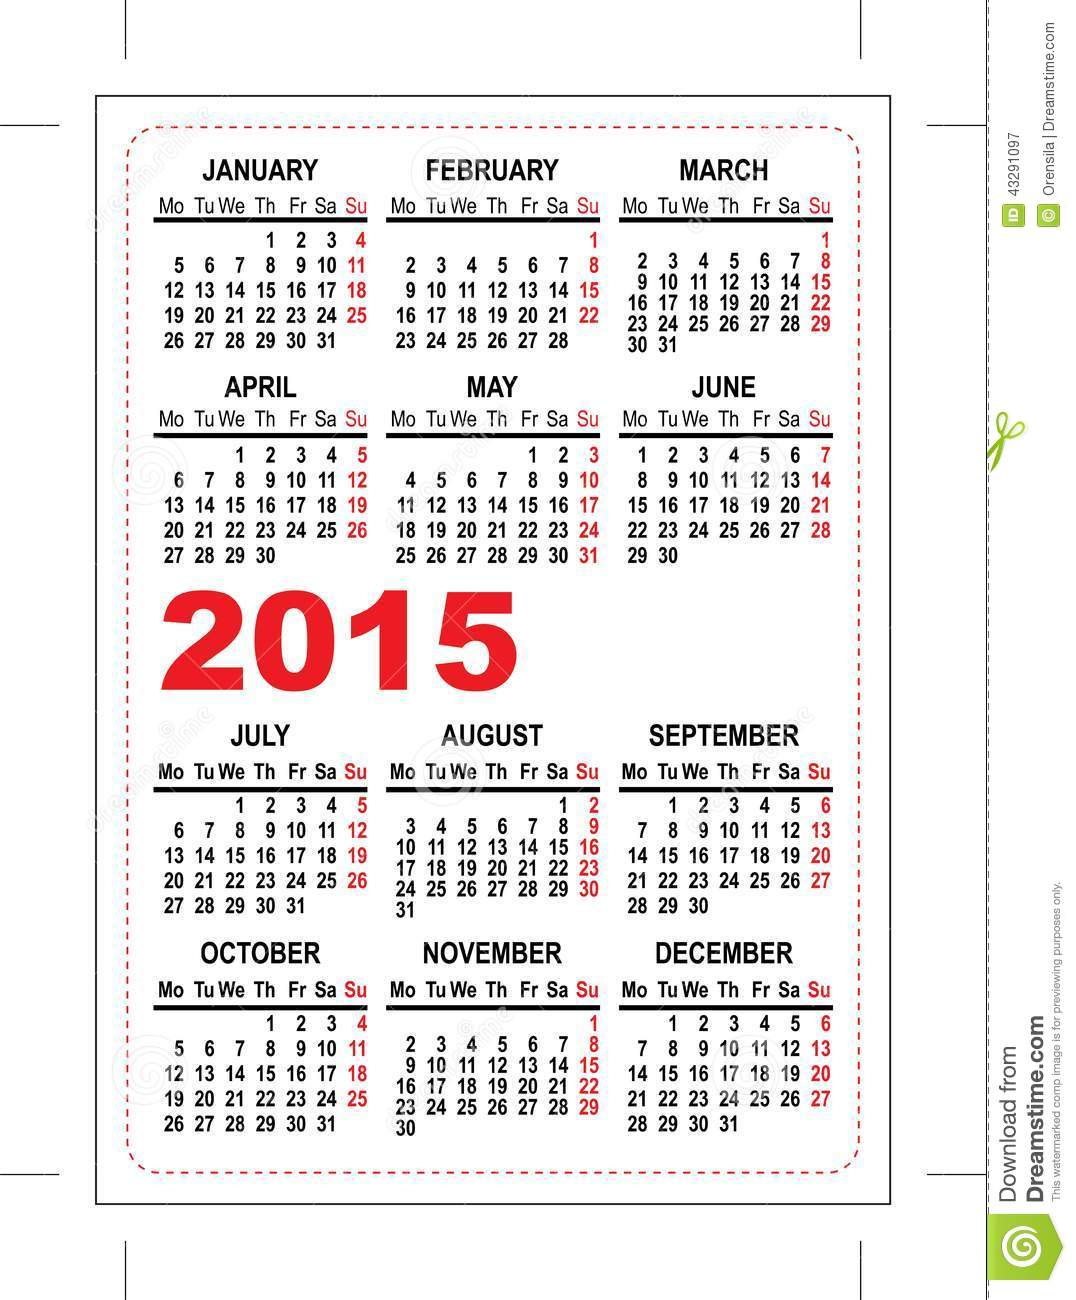 pocket schedule template - pocket calendar 2015 template stock illustration image